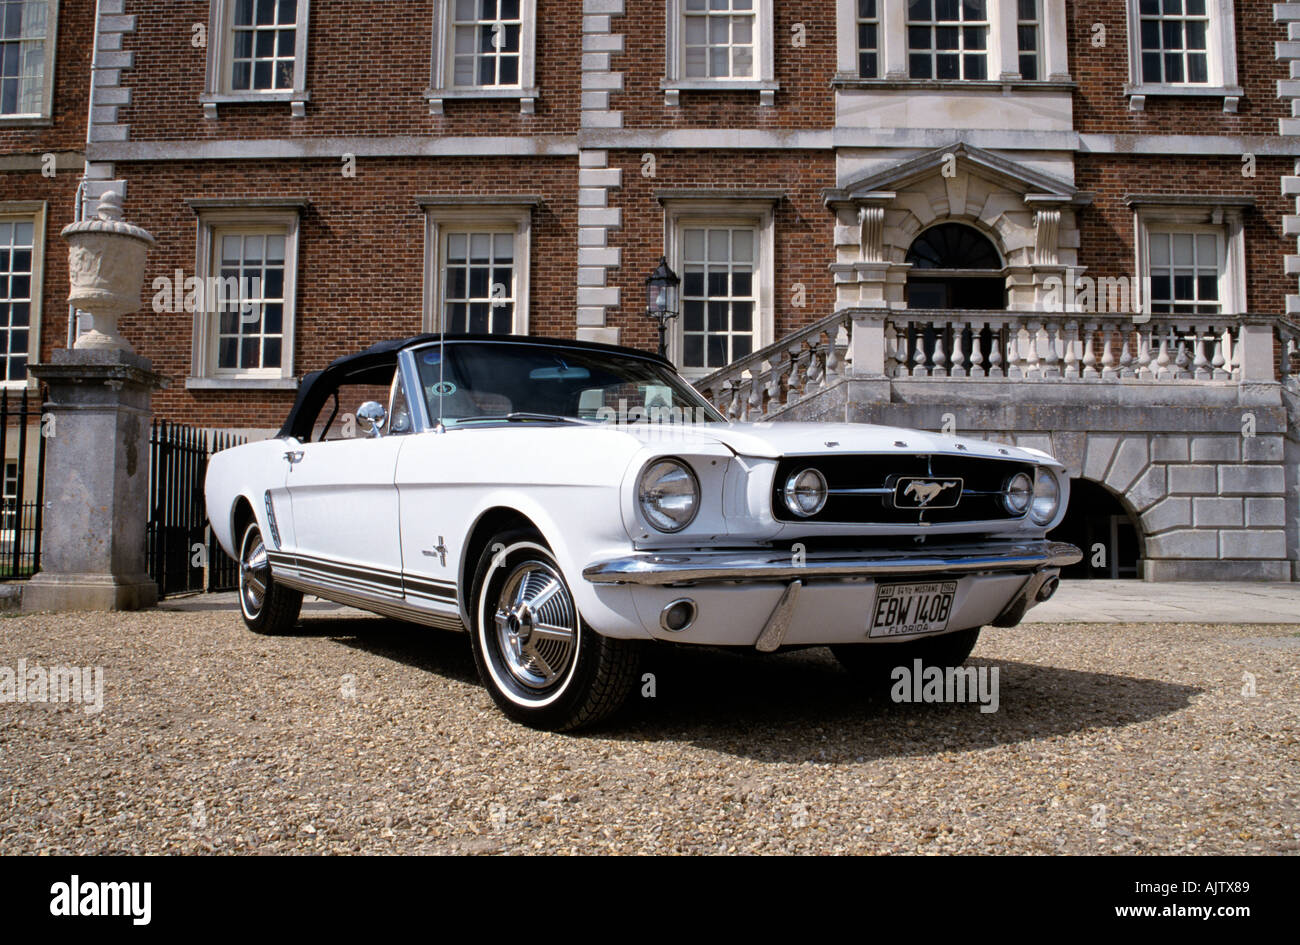 1964 Ford Mustang Stock Photos Images Alamy Convertible Of And A Half Image